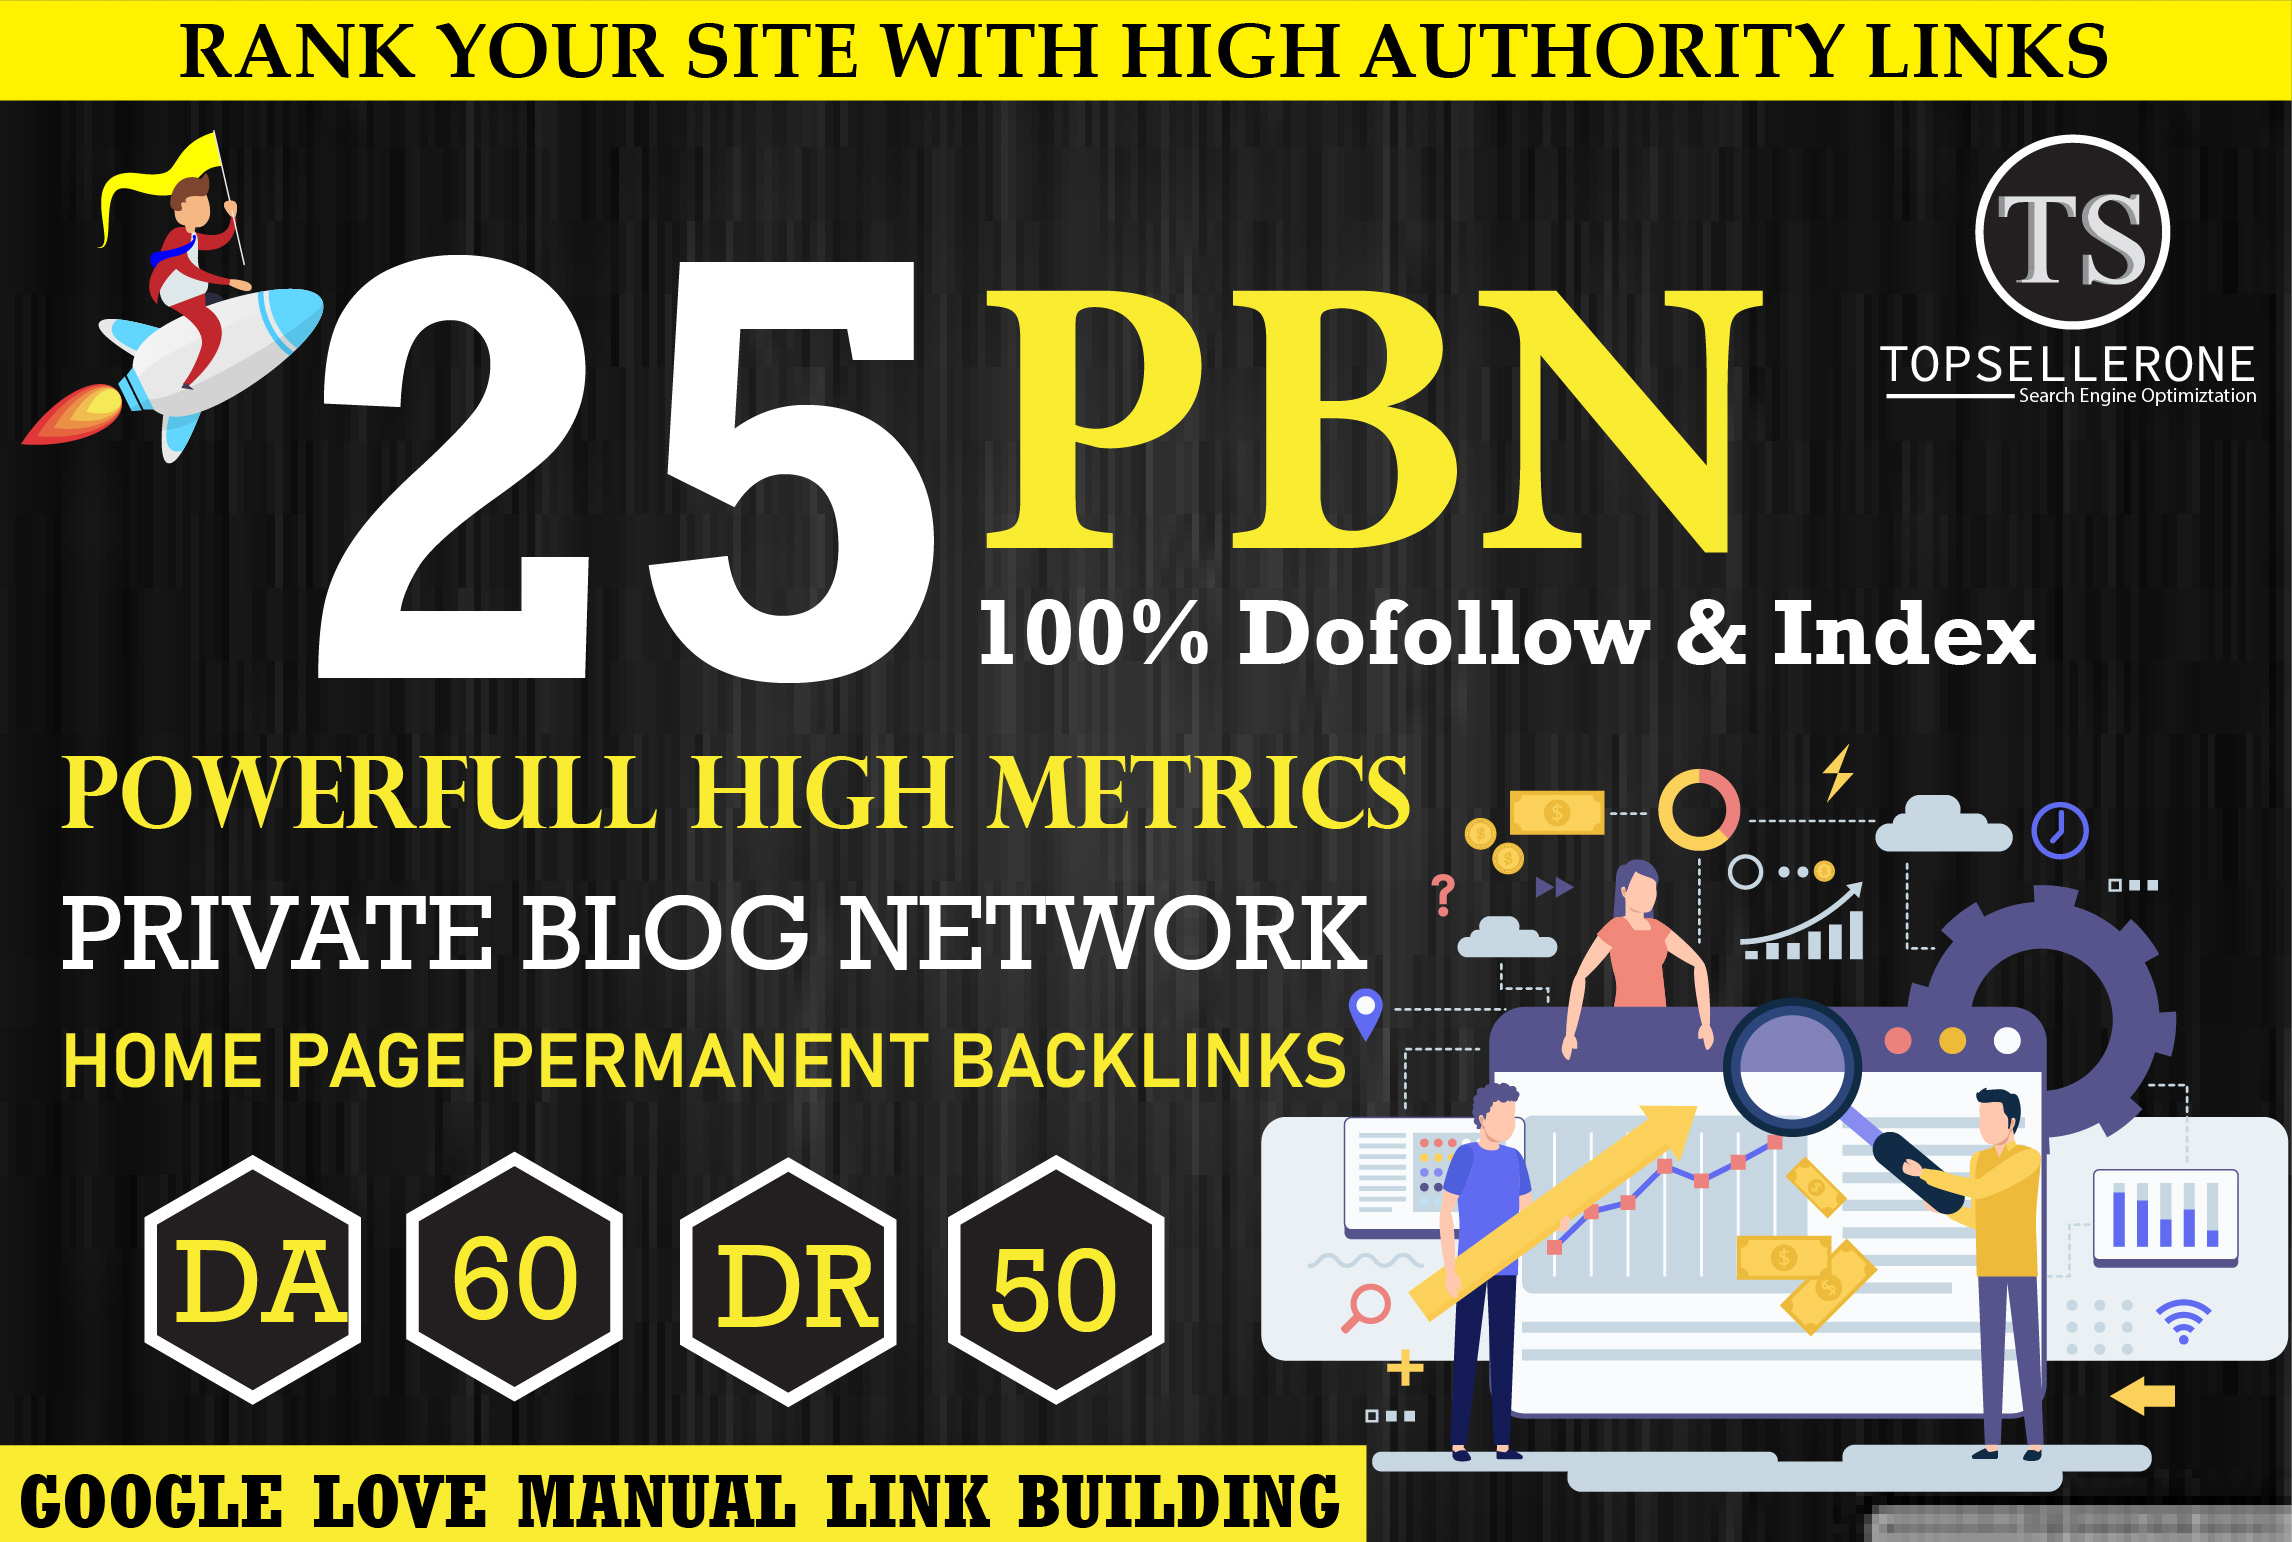 Guarante Boost Your Site With 25 Homepage PBN DA 60+ DR 50+ Low spam score Index Links